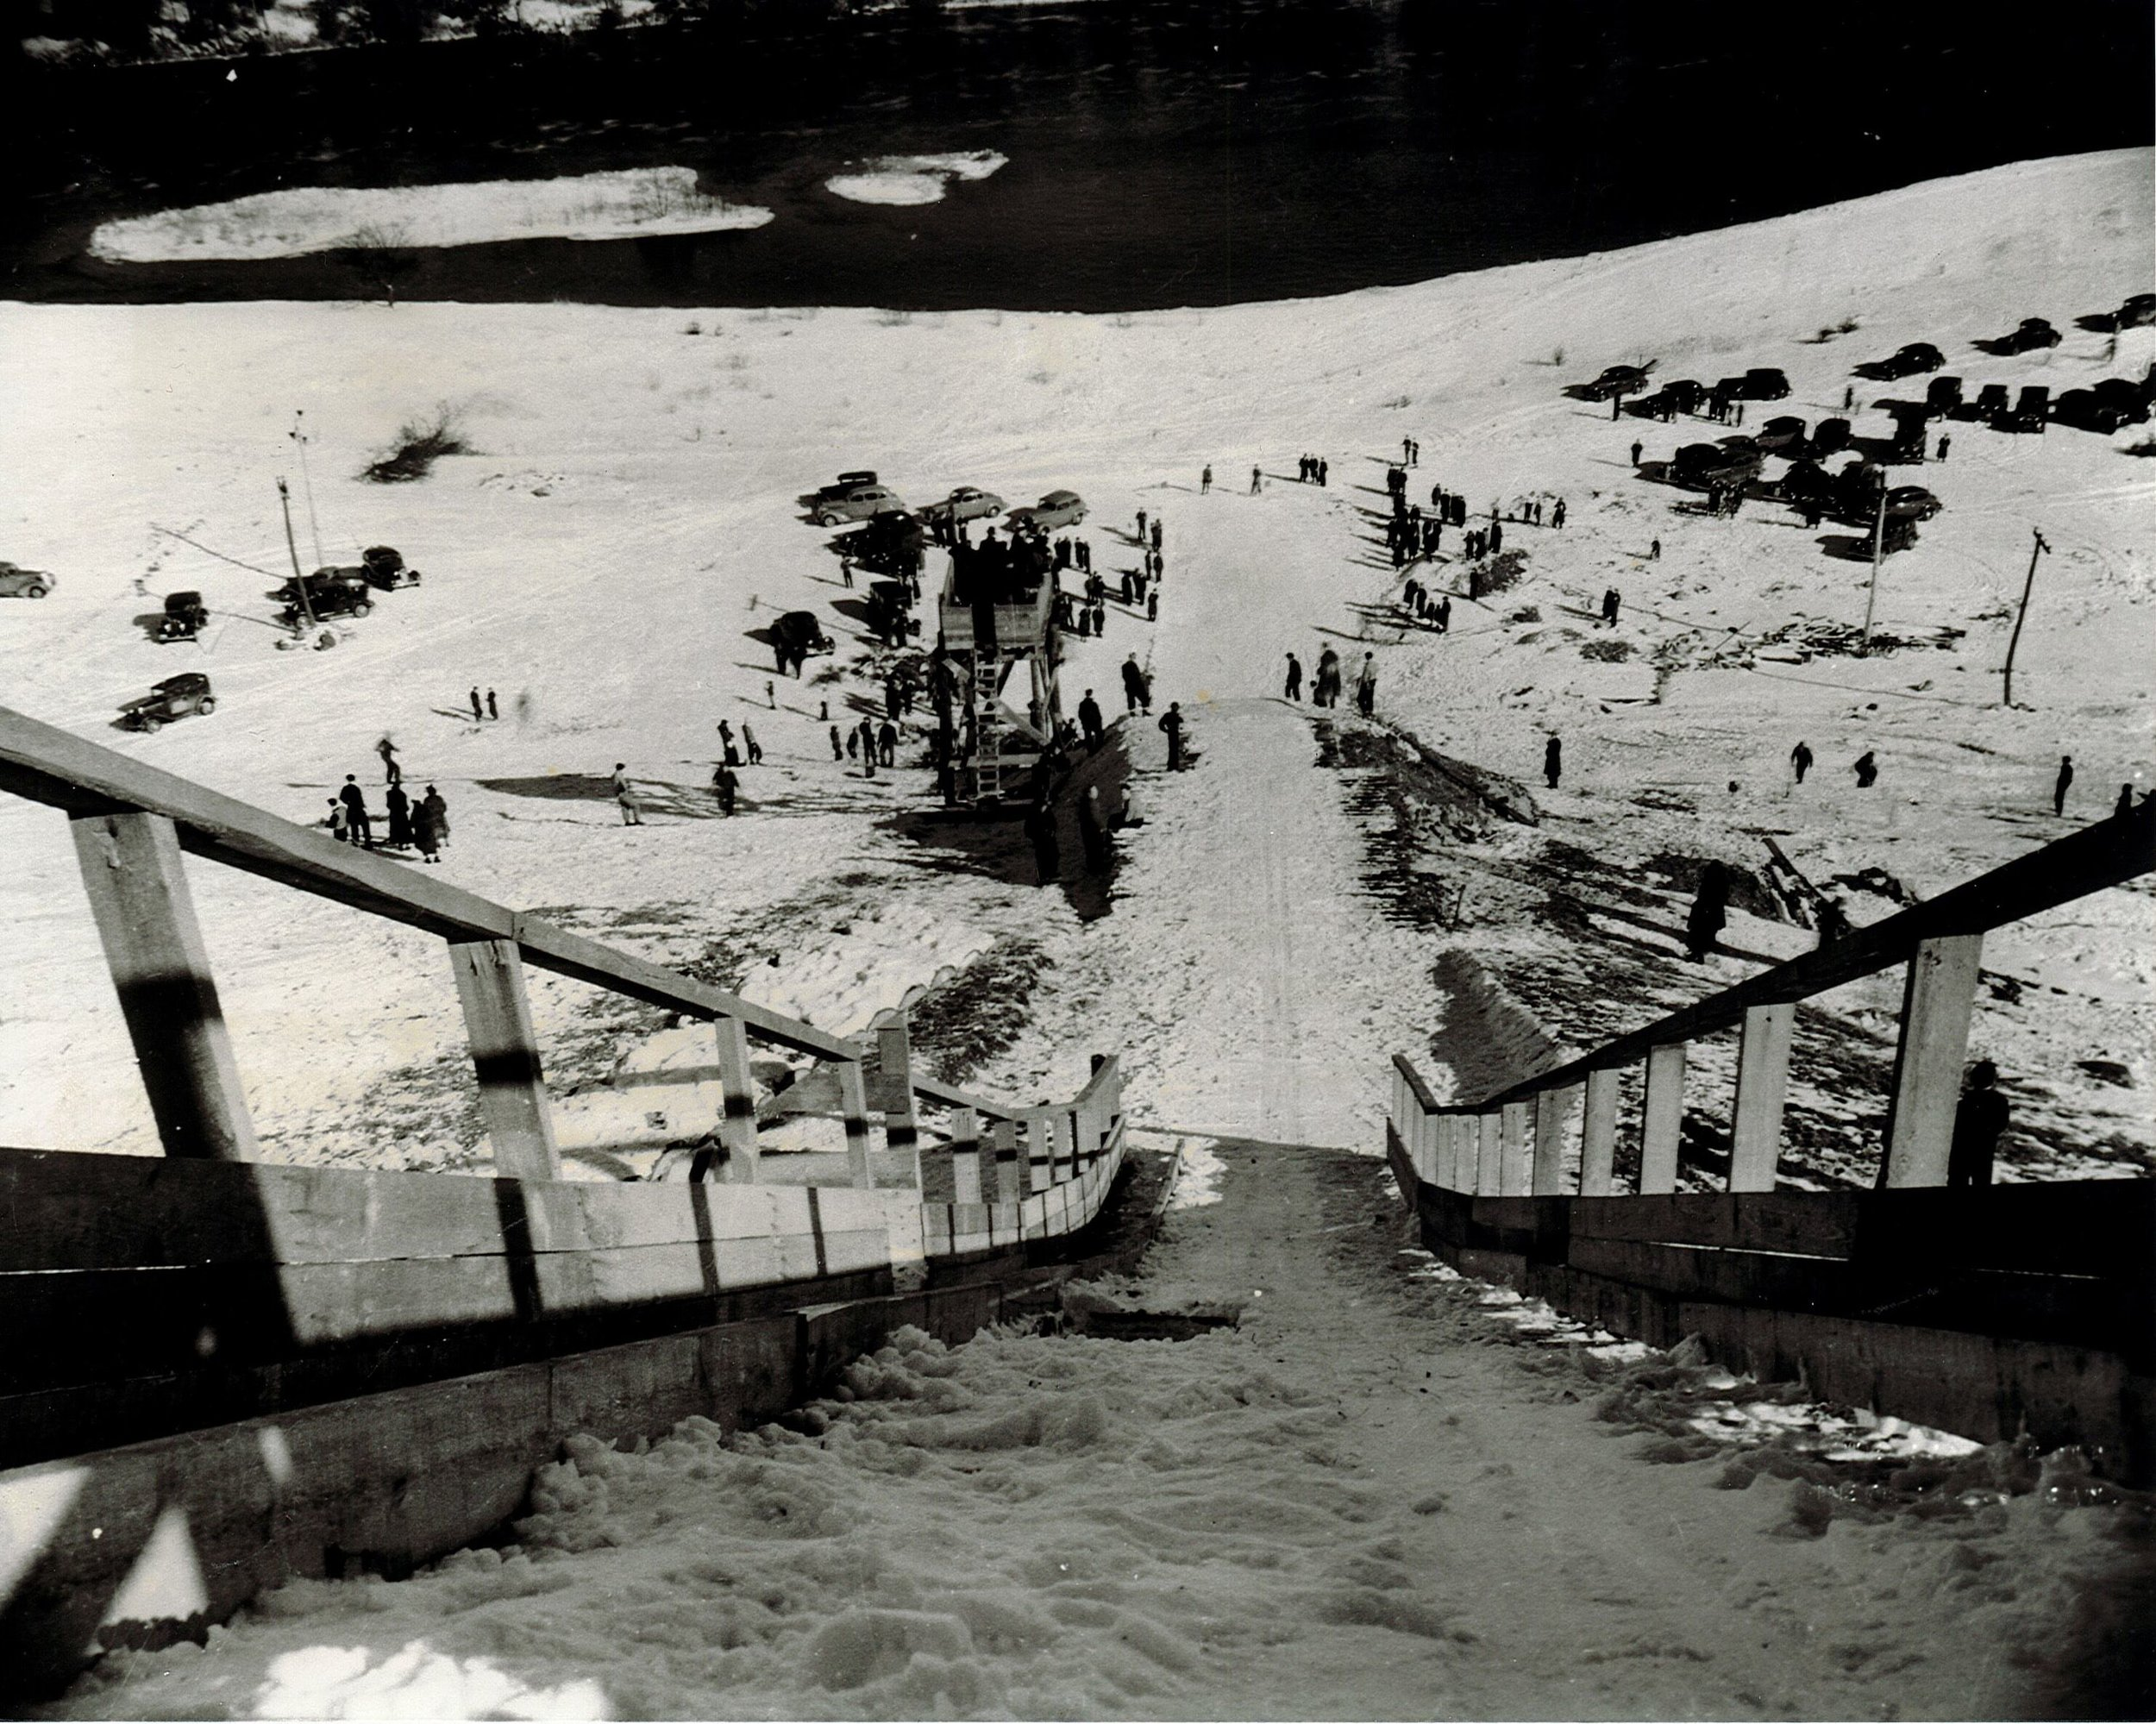 Ski Jump on Lady Eaton Drumlin. Photo provided courtesy of Peterborough Museum and Archives